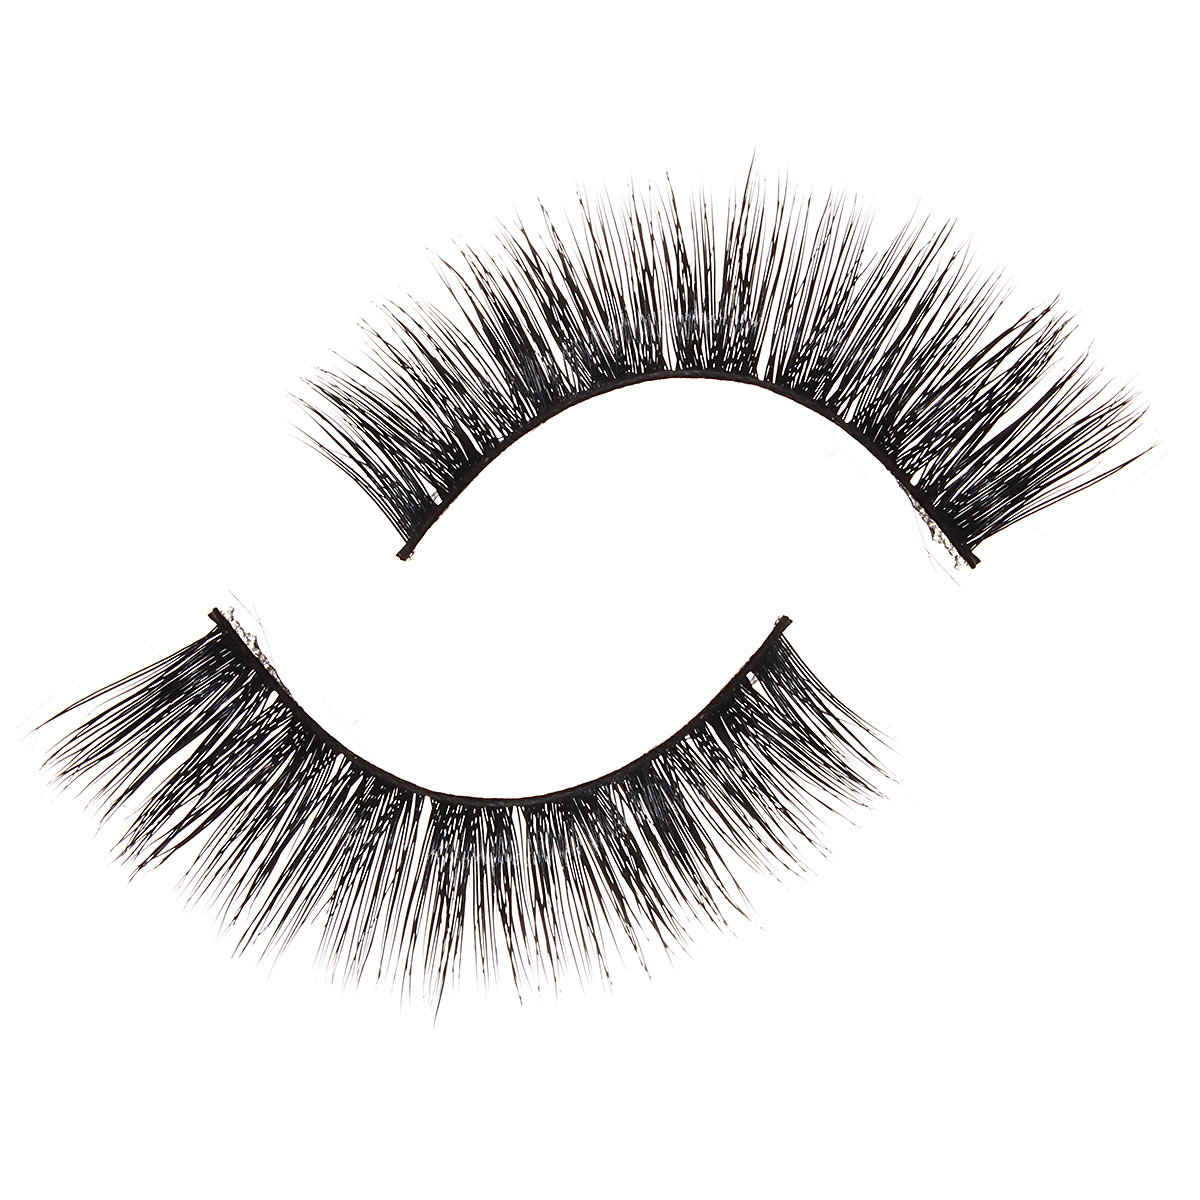 3D Mink Hair Black False Eyelashes Makeup Cosmetics Handmade Thick Natural Long